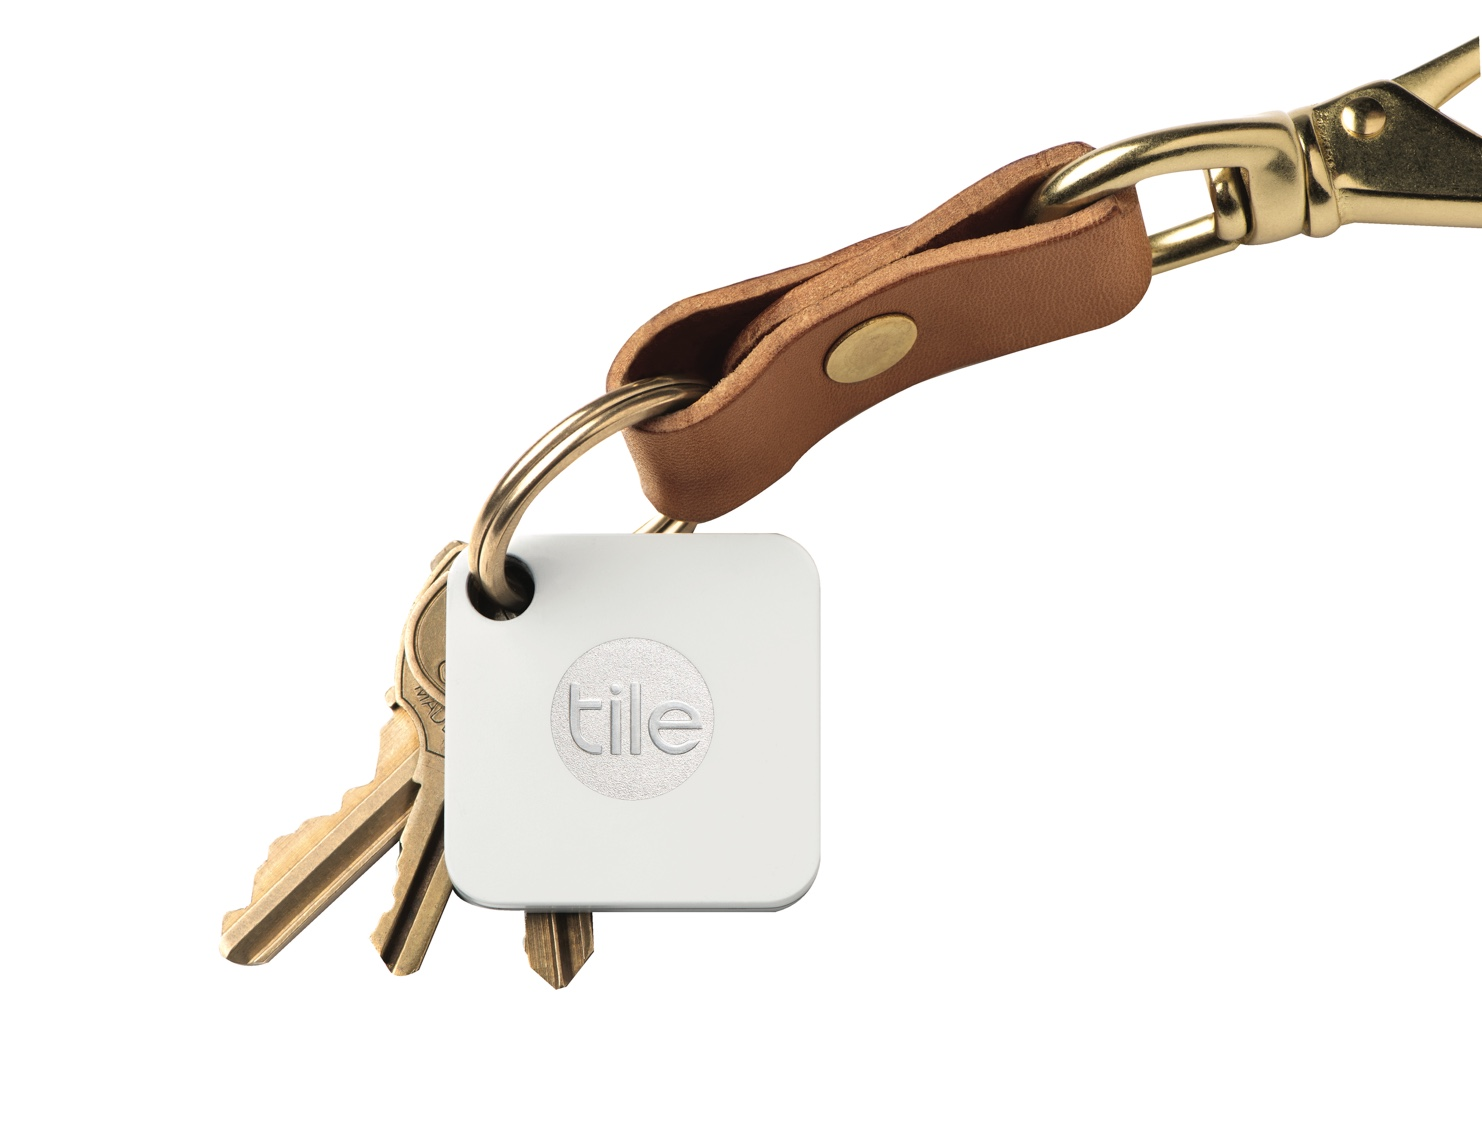 Tile Mate Key and Phone Finder